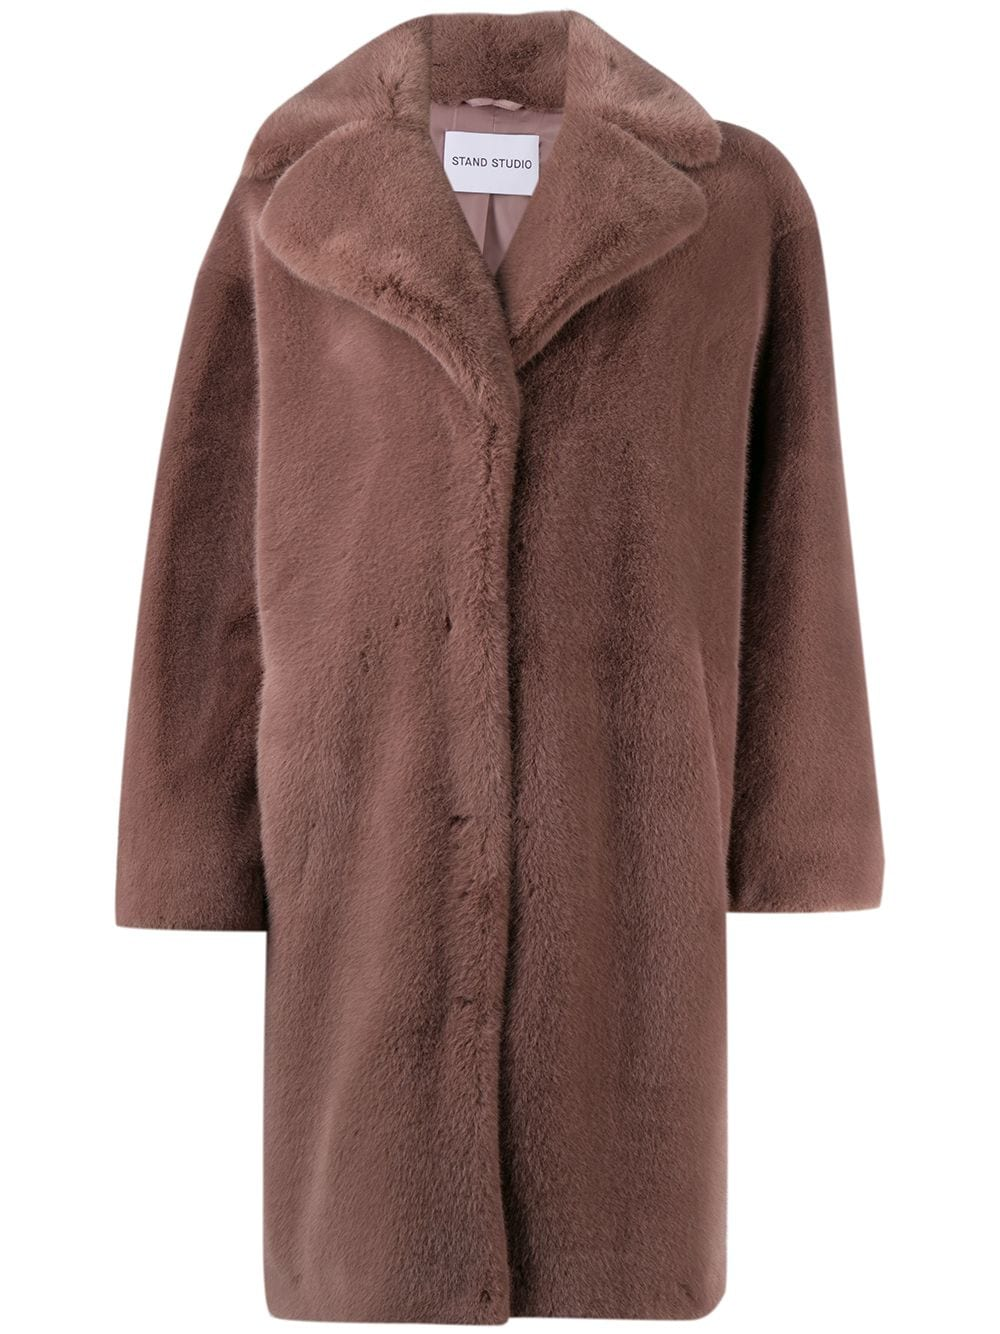 stand-studio-camille-oversized-faux-fur-coat